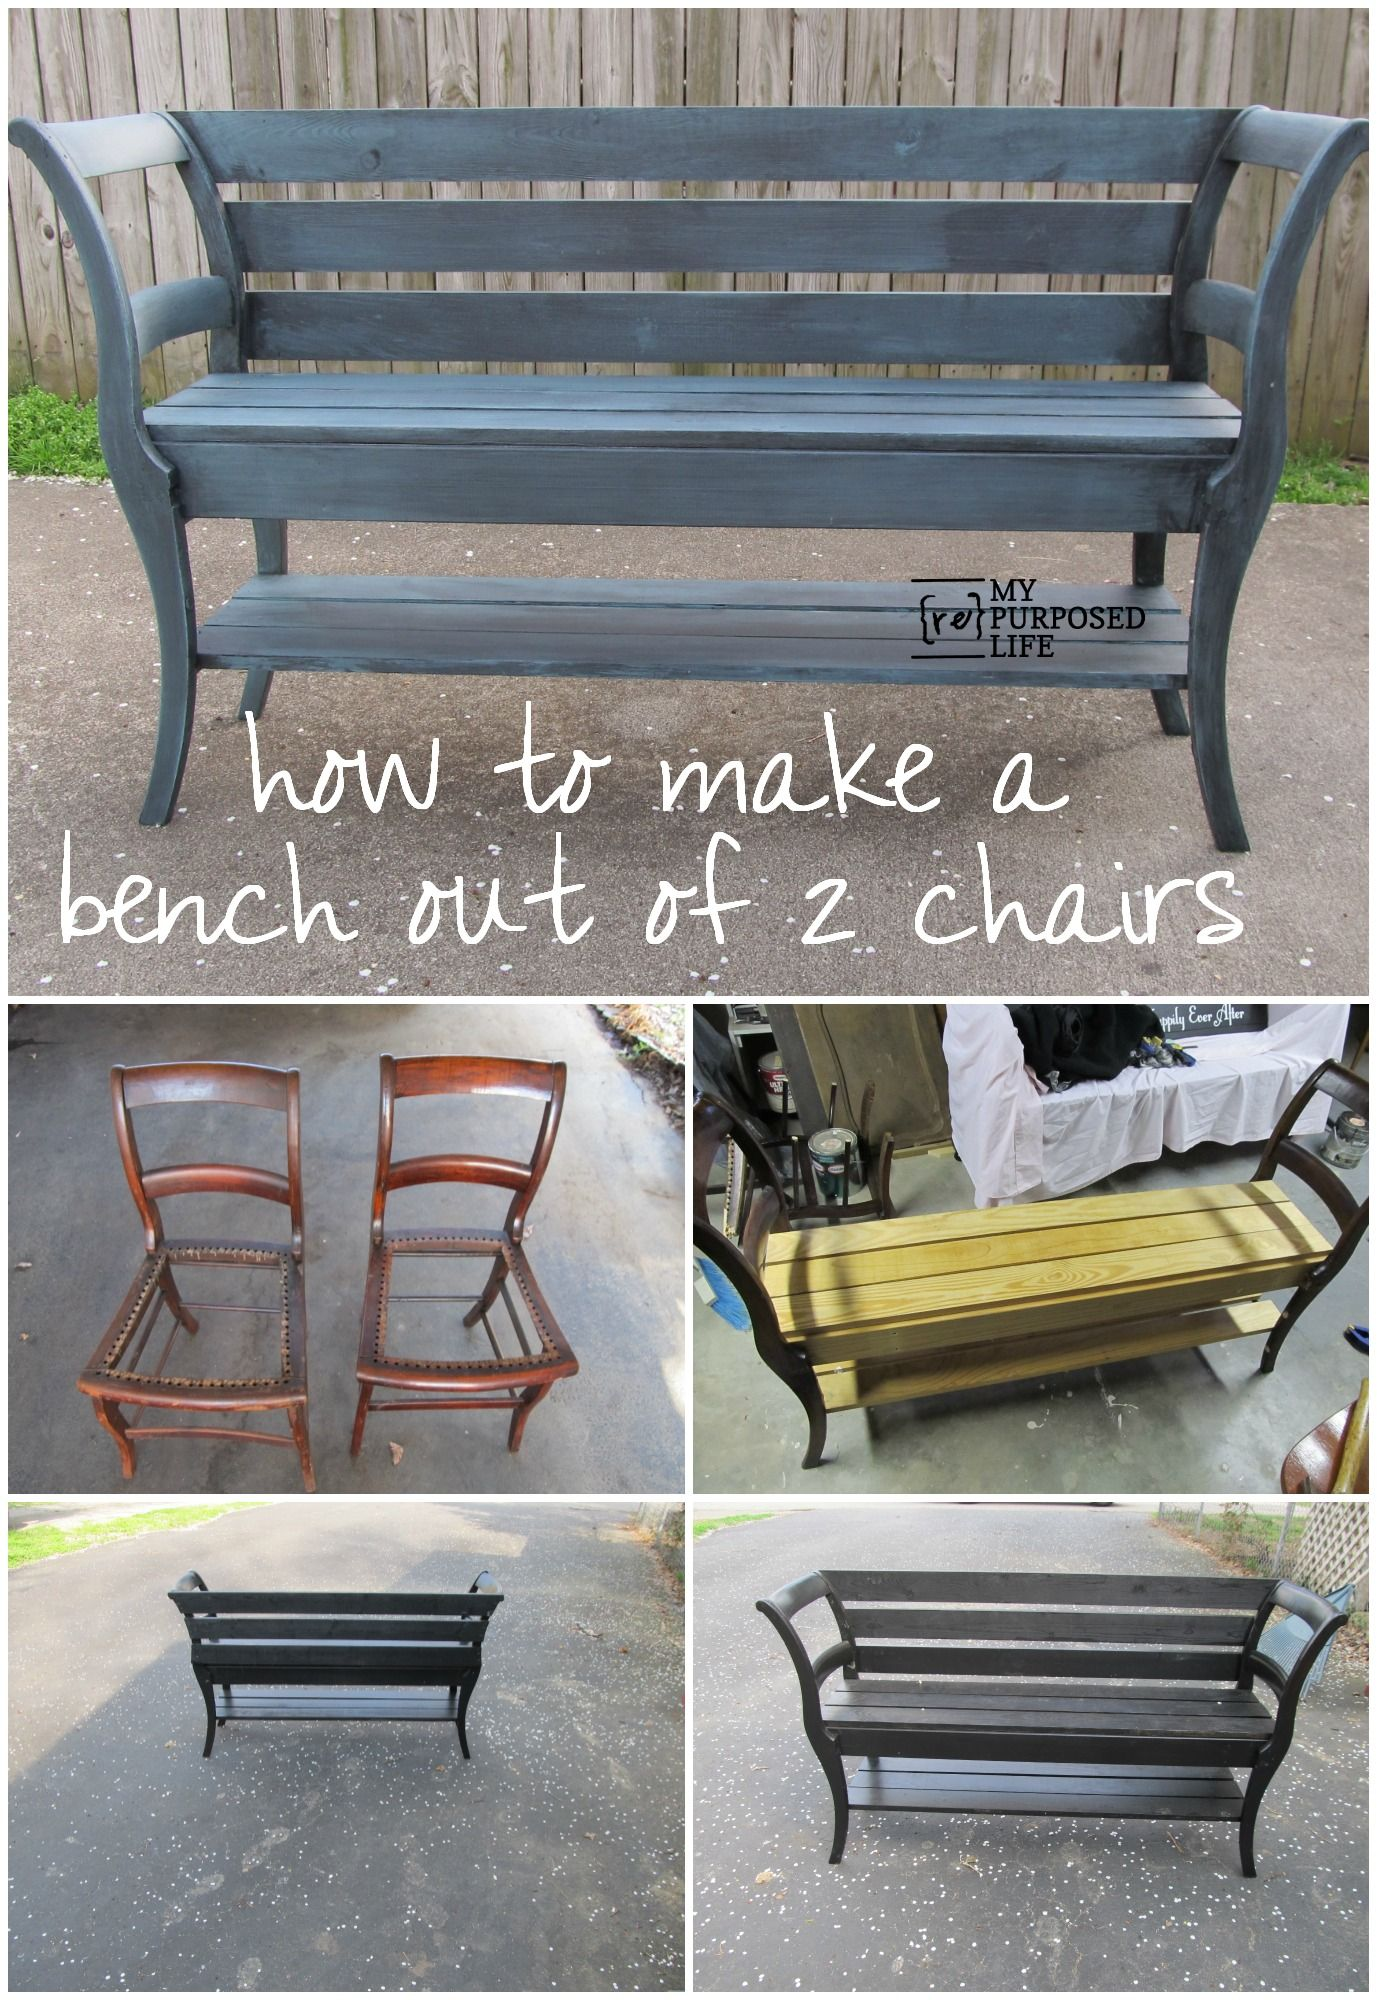 repurposed chairs double chair bench ideen rund ums haus m bel diy m bel und st hle. Black Bedroom Furniture Sets. Home Design Ideas